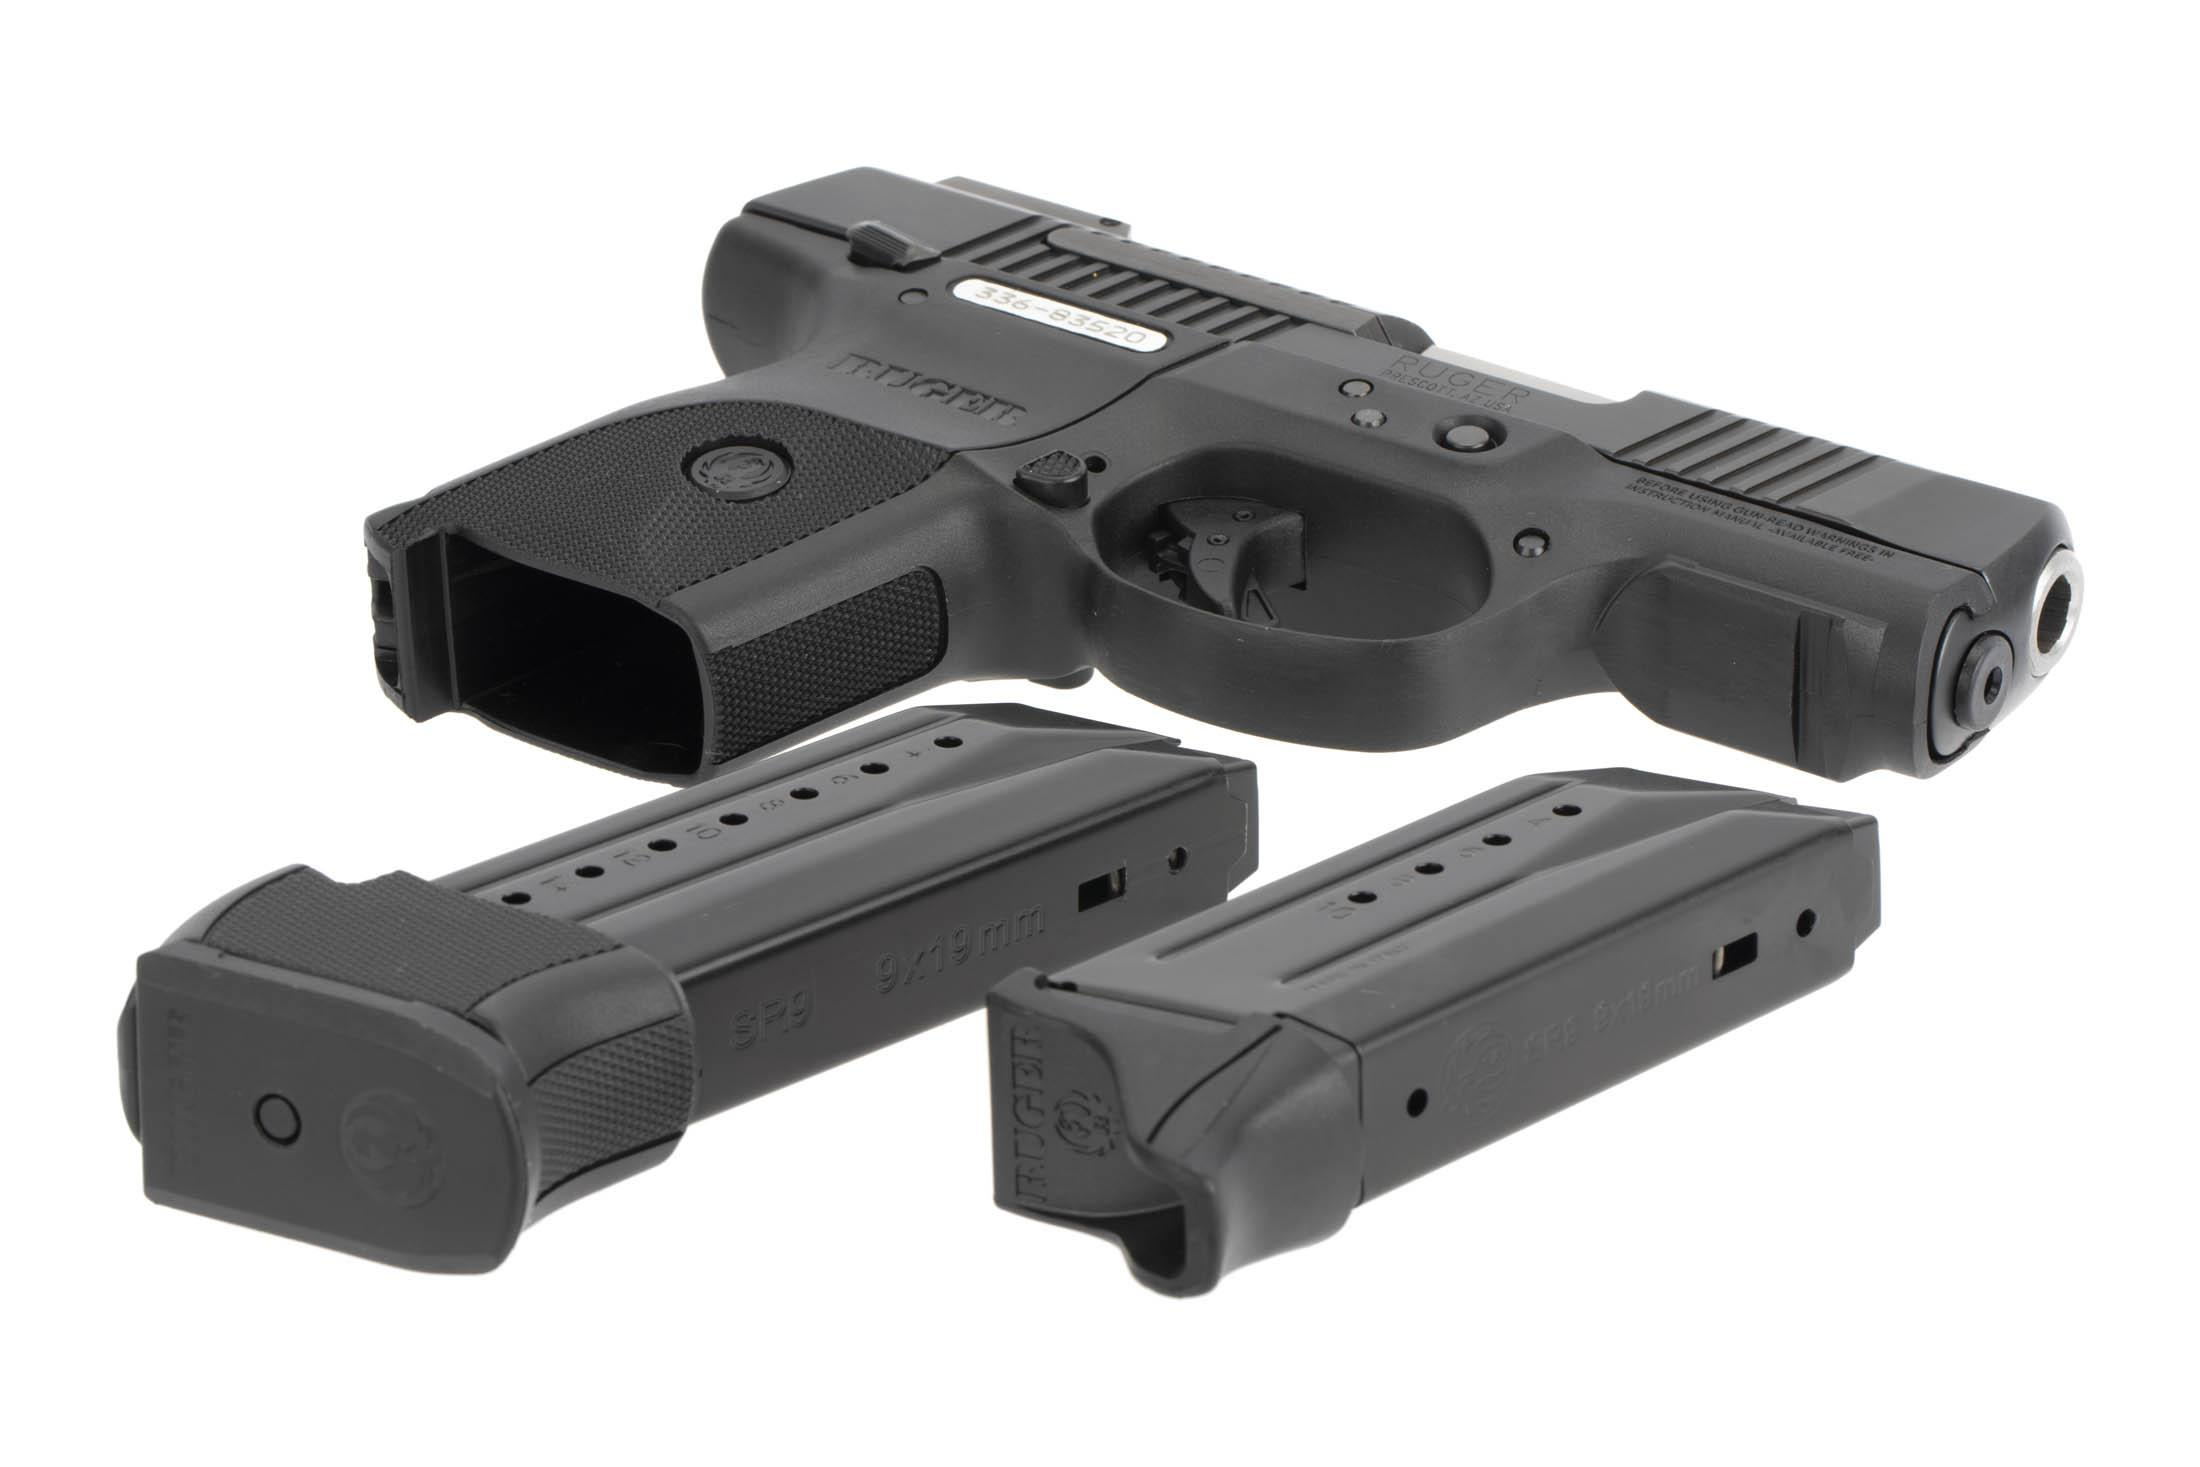 The Ruger SR9c comes with two magazines